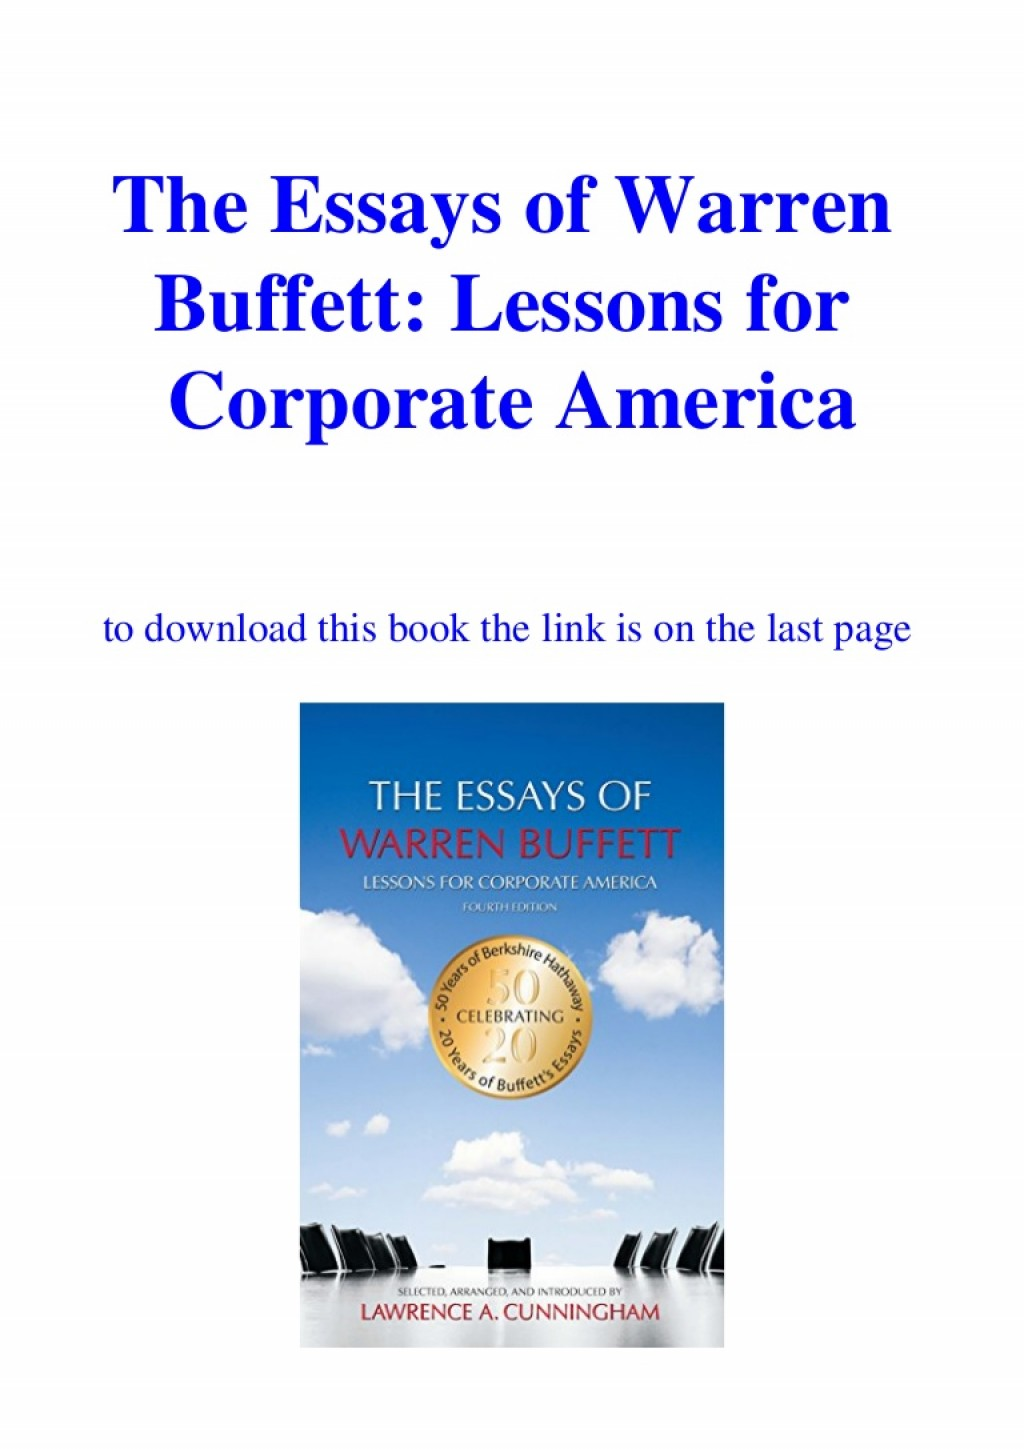 015 Essay Example Downloadtheessaysofwarrenbuffettlessonsforcorporateamericaebookpdf Thumbnail The Essays Of Warren Buffett Lessons For Corporate Remarkable America Third Edition 3rd Second Pdf Audio Book Large